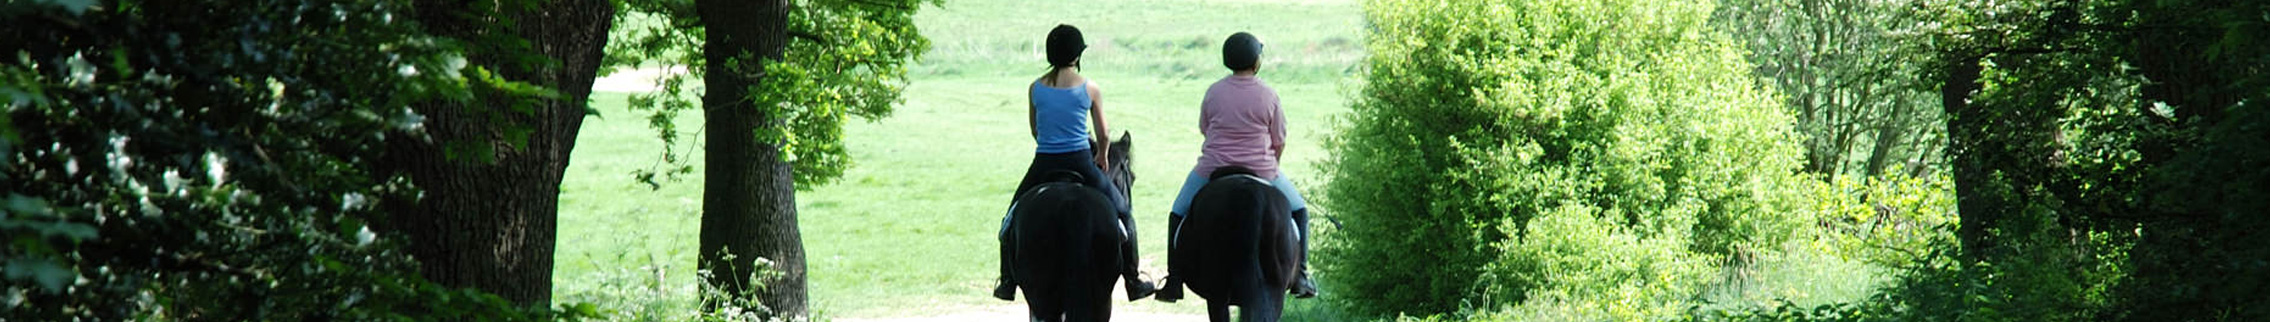 All horses welcome on these riding trails.